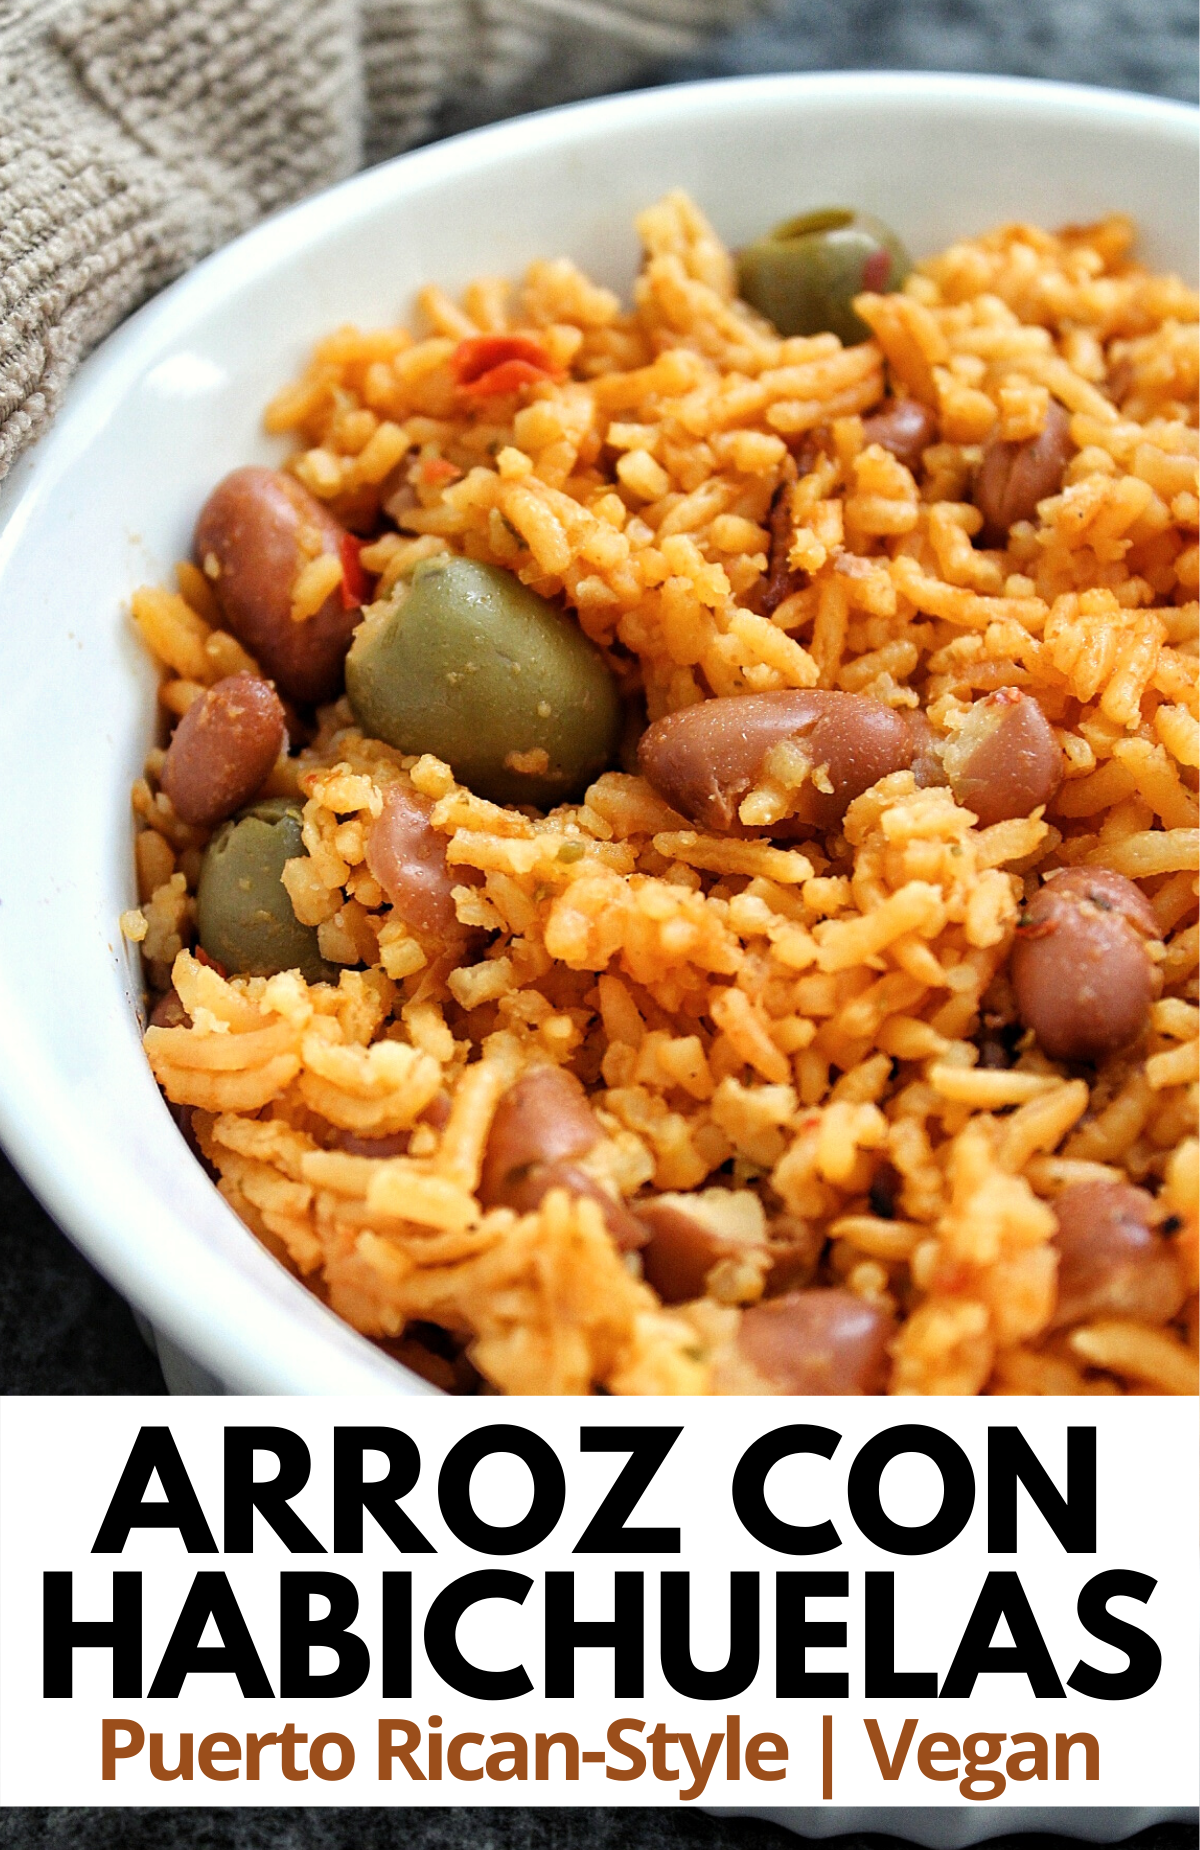 Pueto Rican yellow rice with pink beans made with sofrito, tomato sauce, and seasoning.